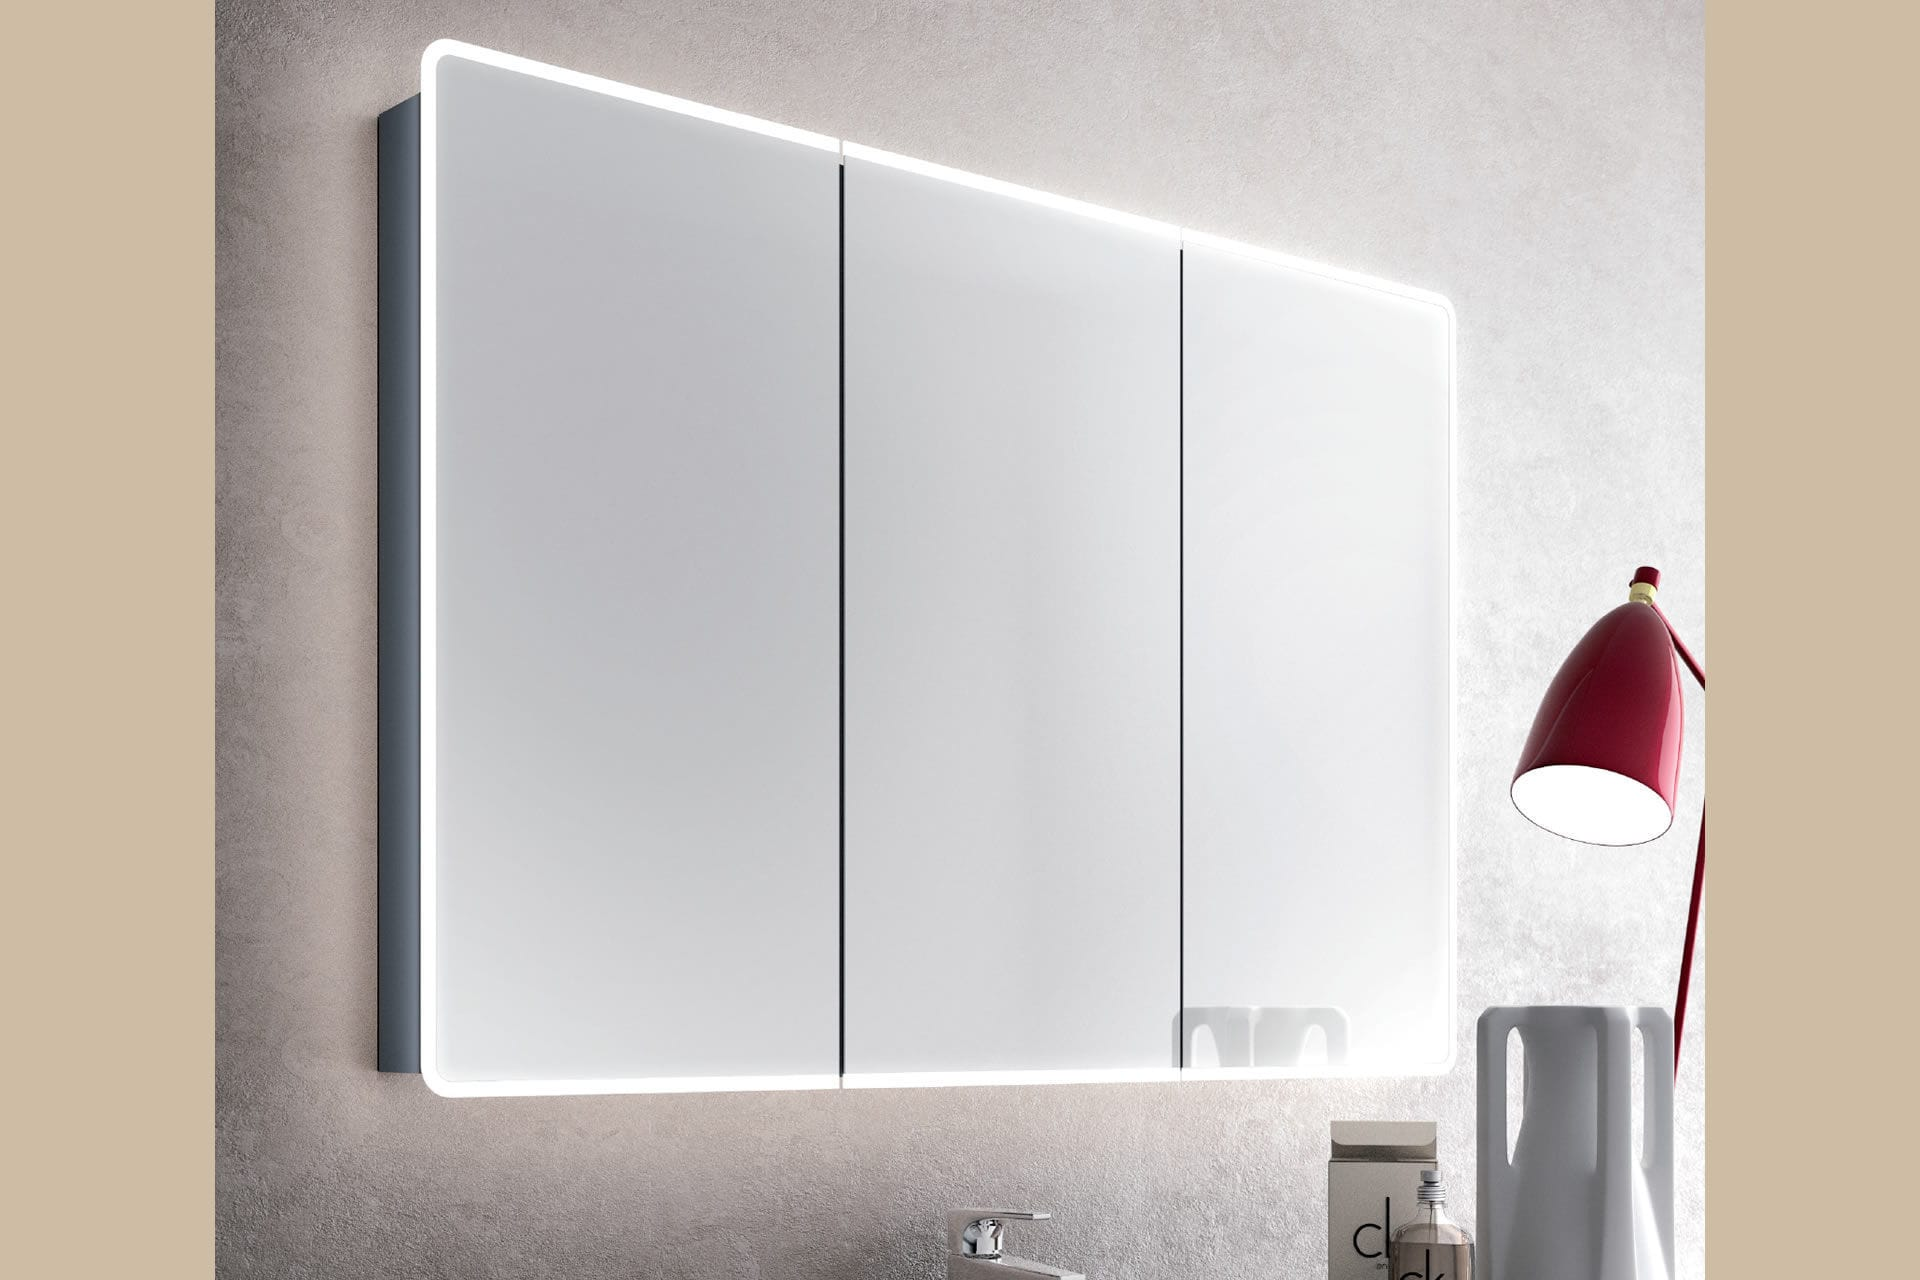 Mirrored bathroom wall cabinet - SERENA - ISA BAGNO